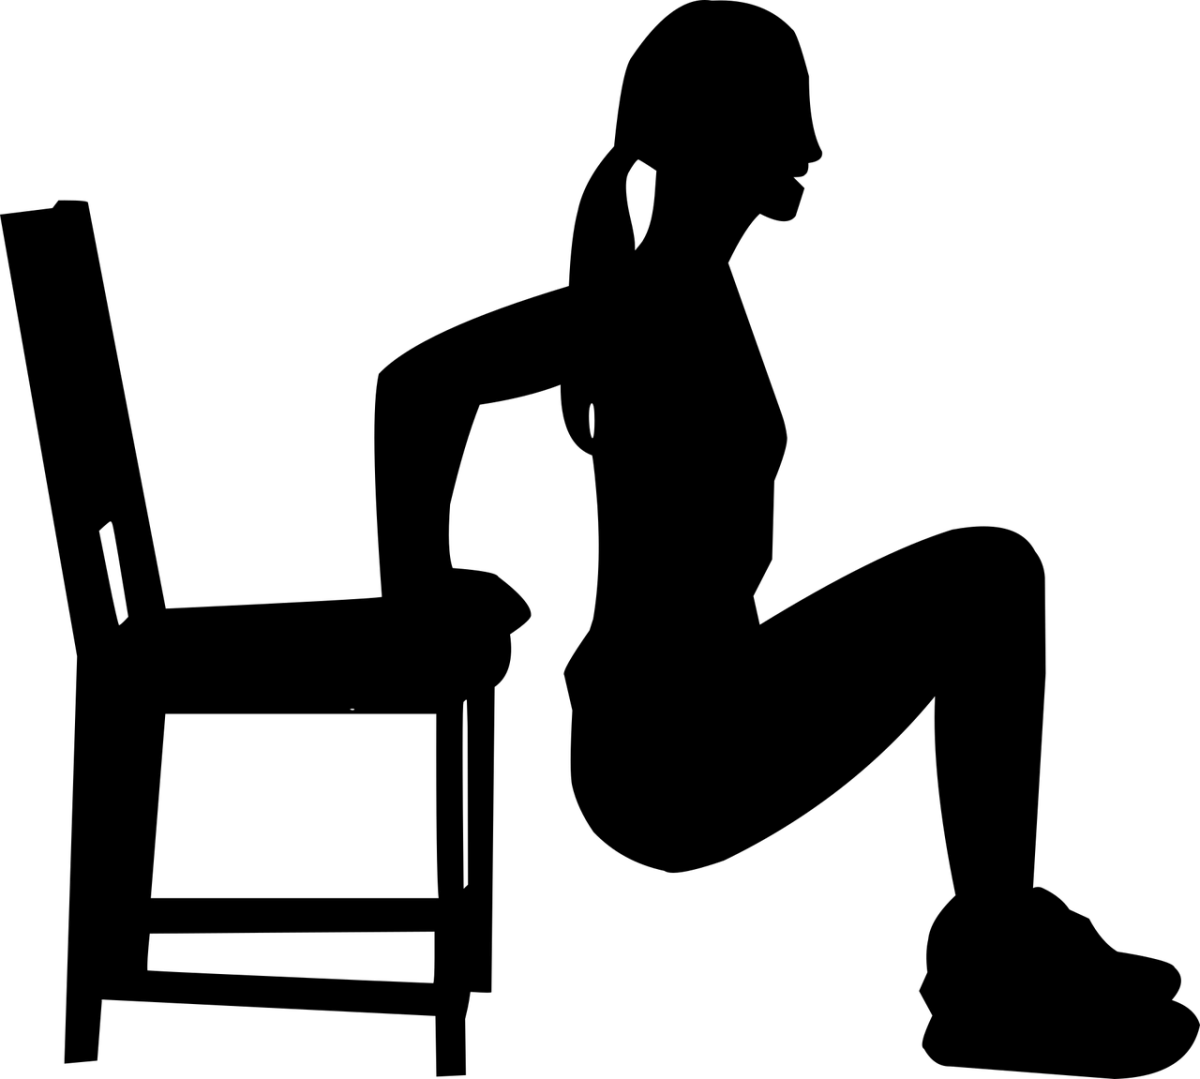 Image of person doing Chair Yoga